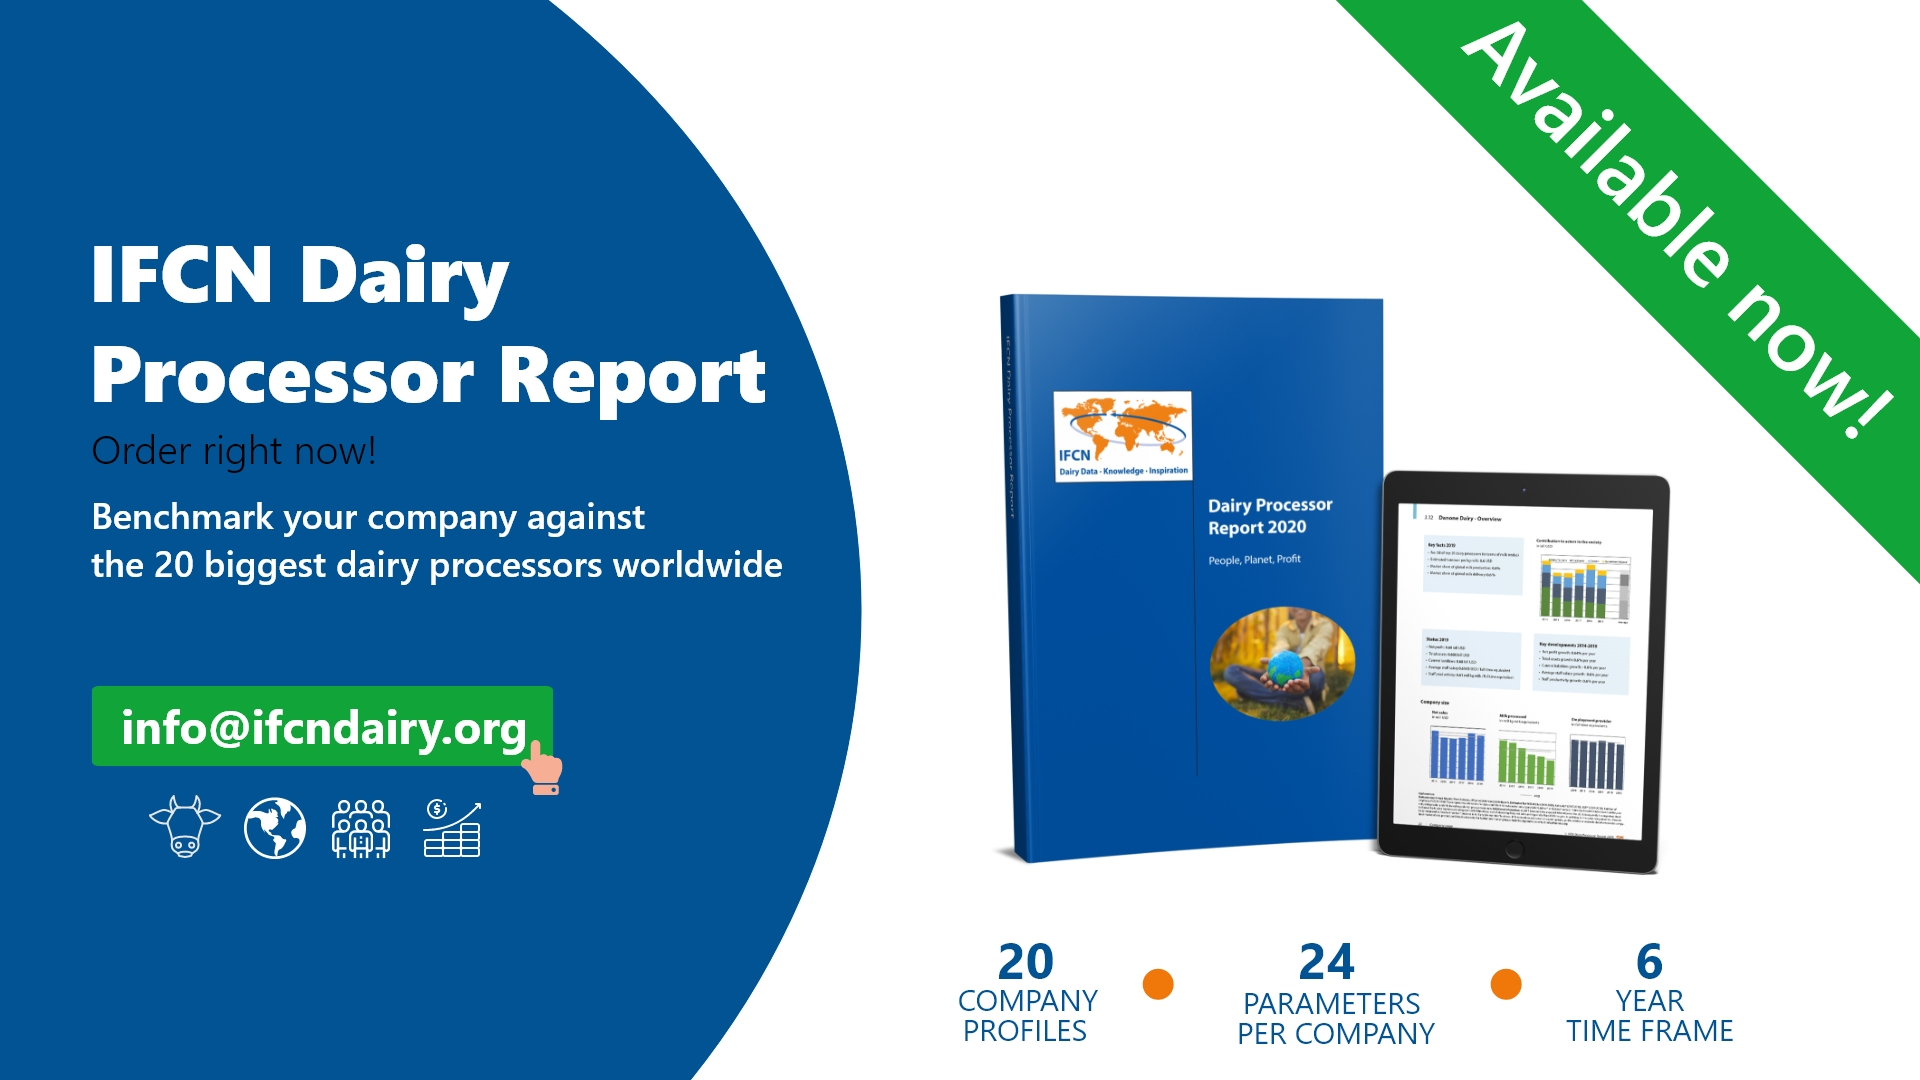 Dairy Processor Report 2020 - Order now!